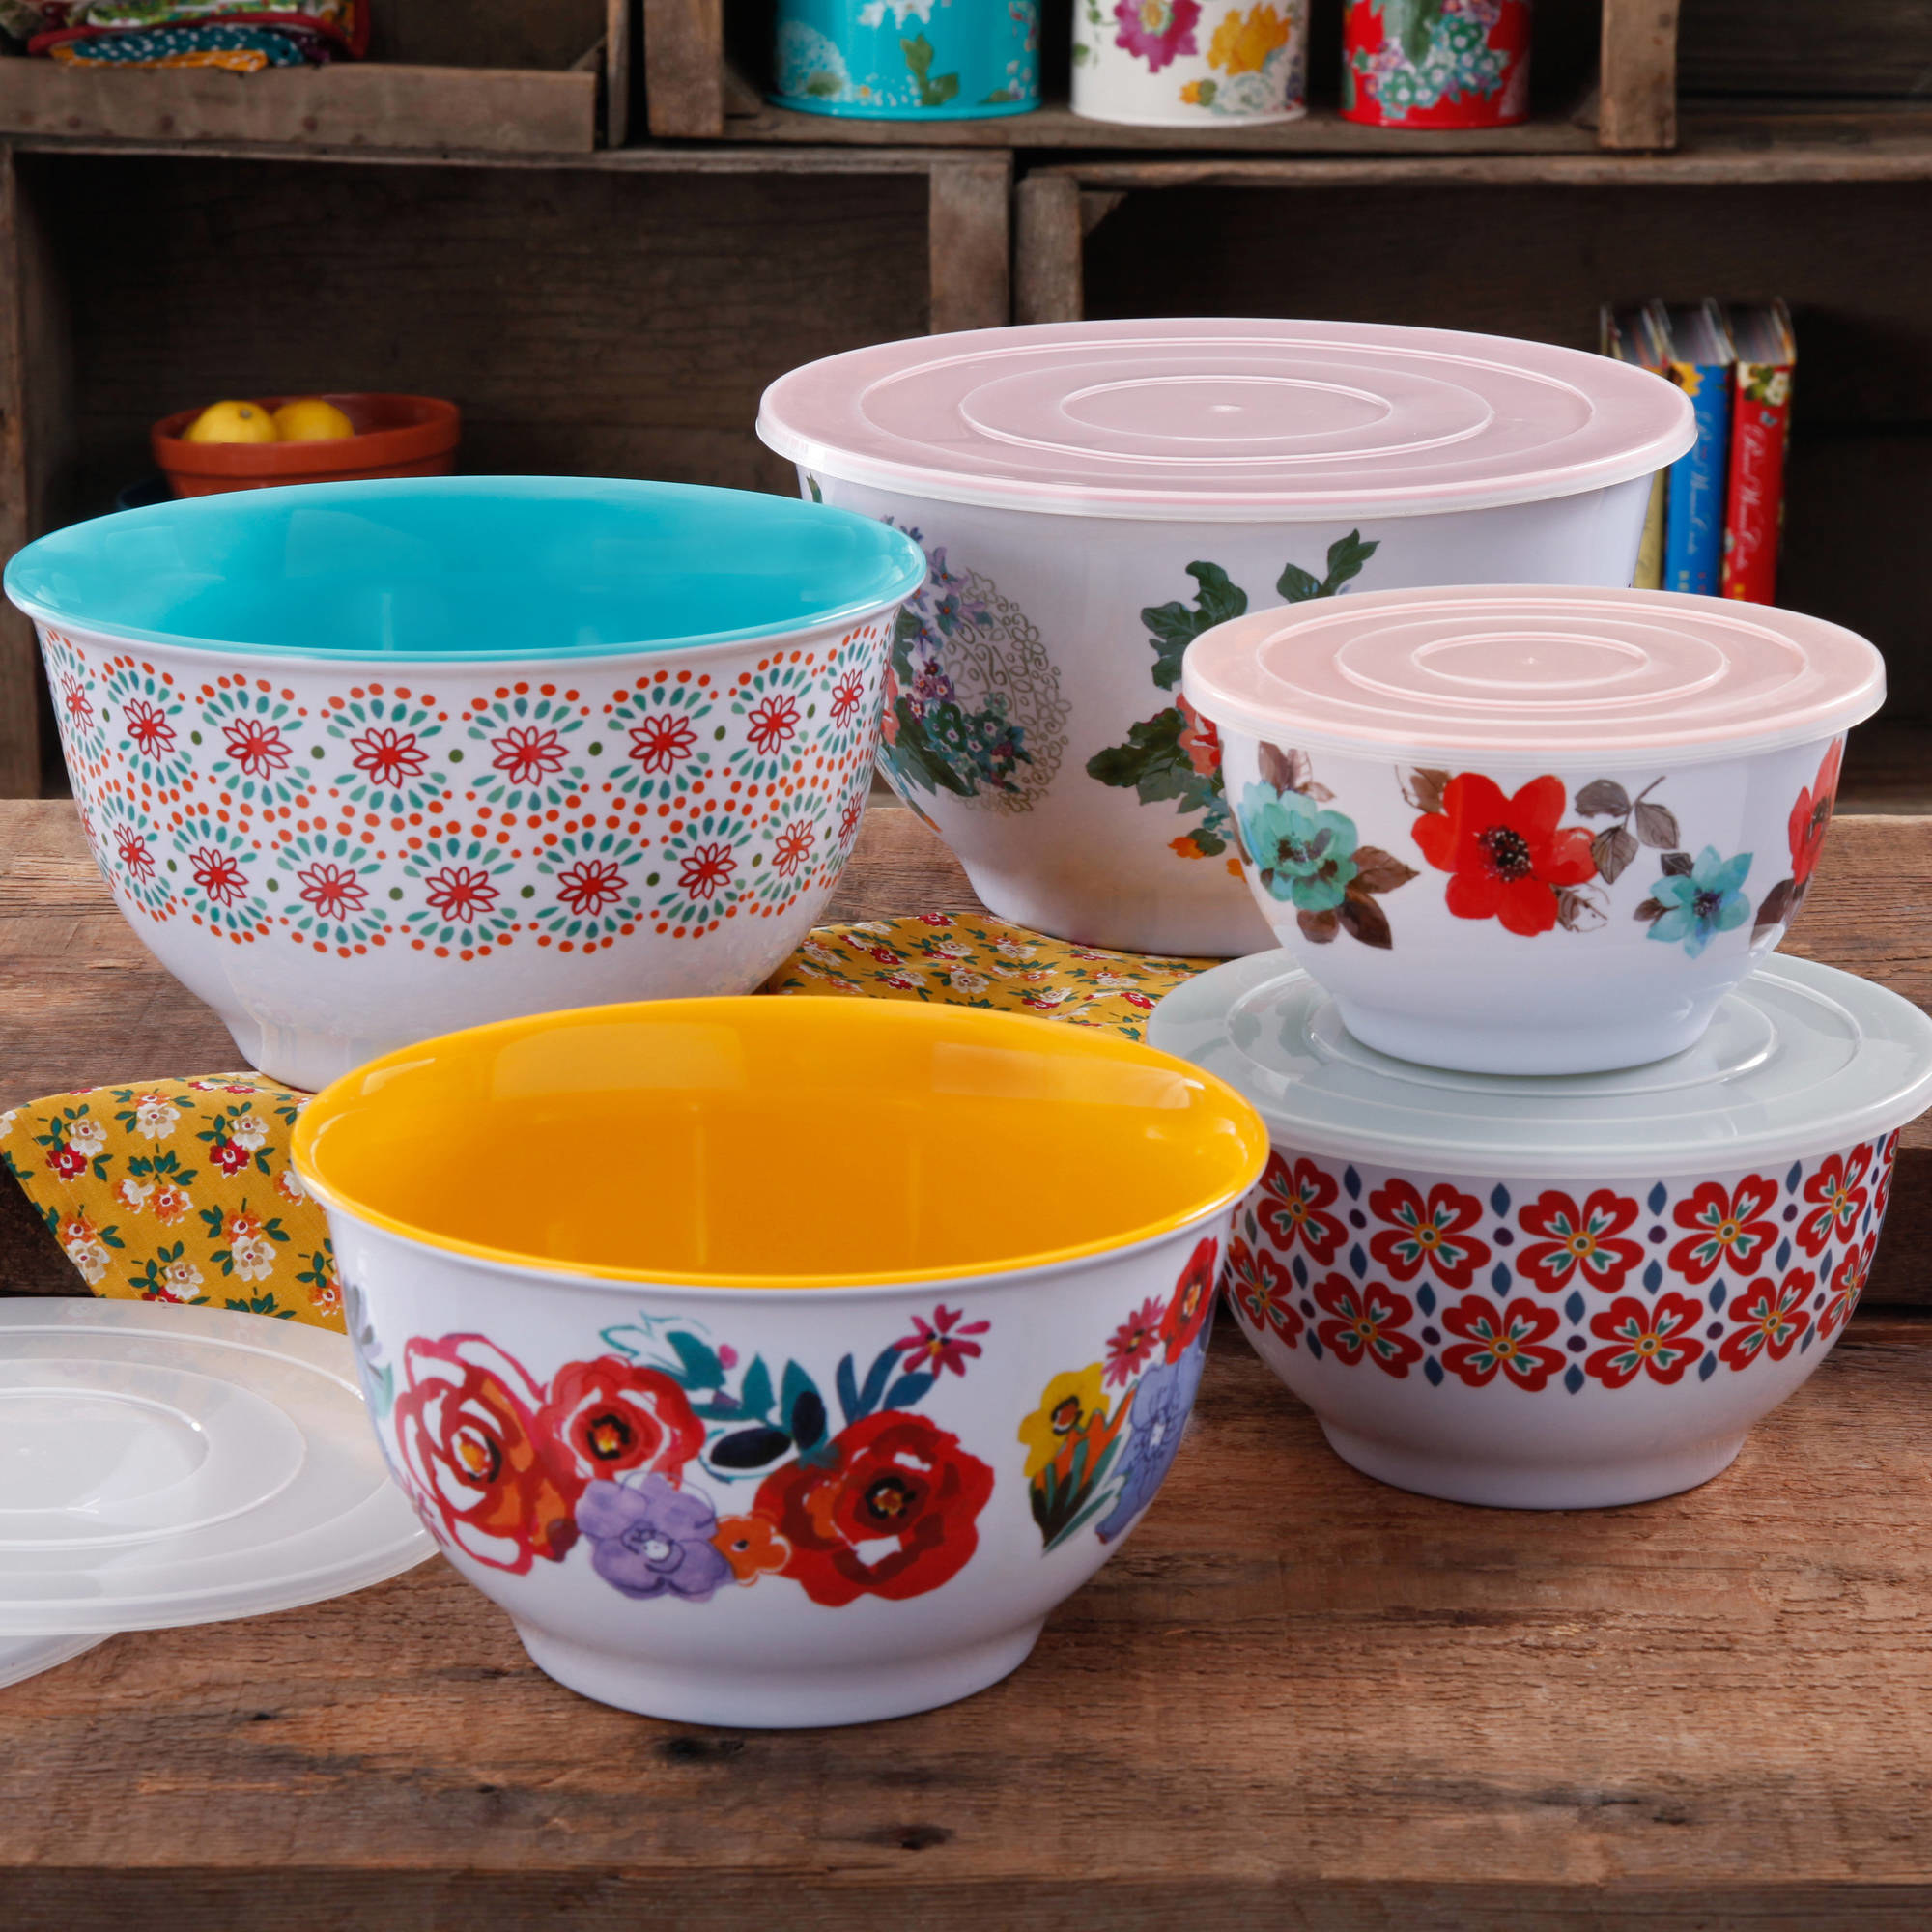 The mixing bowl set in the pattern country garden